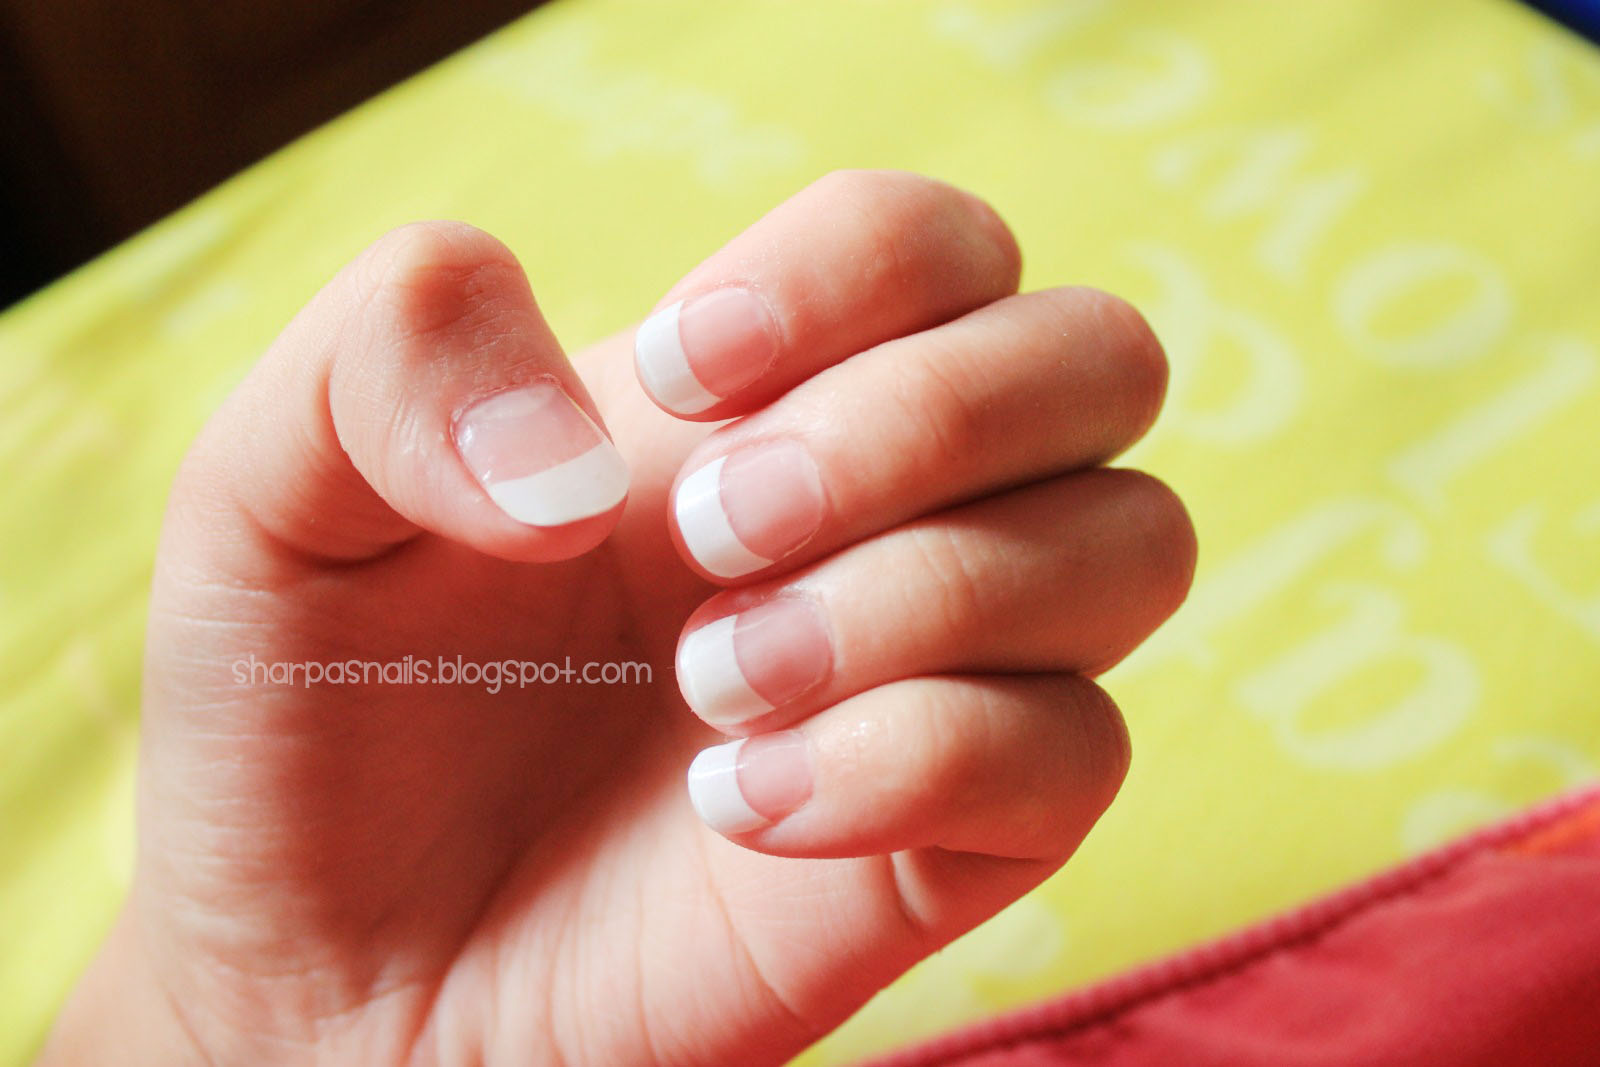 Sharp As Nails (A Nail Art Blog): French Manicure Acrylic Nails